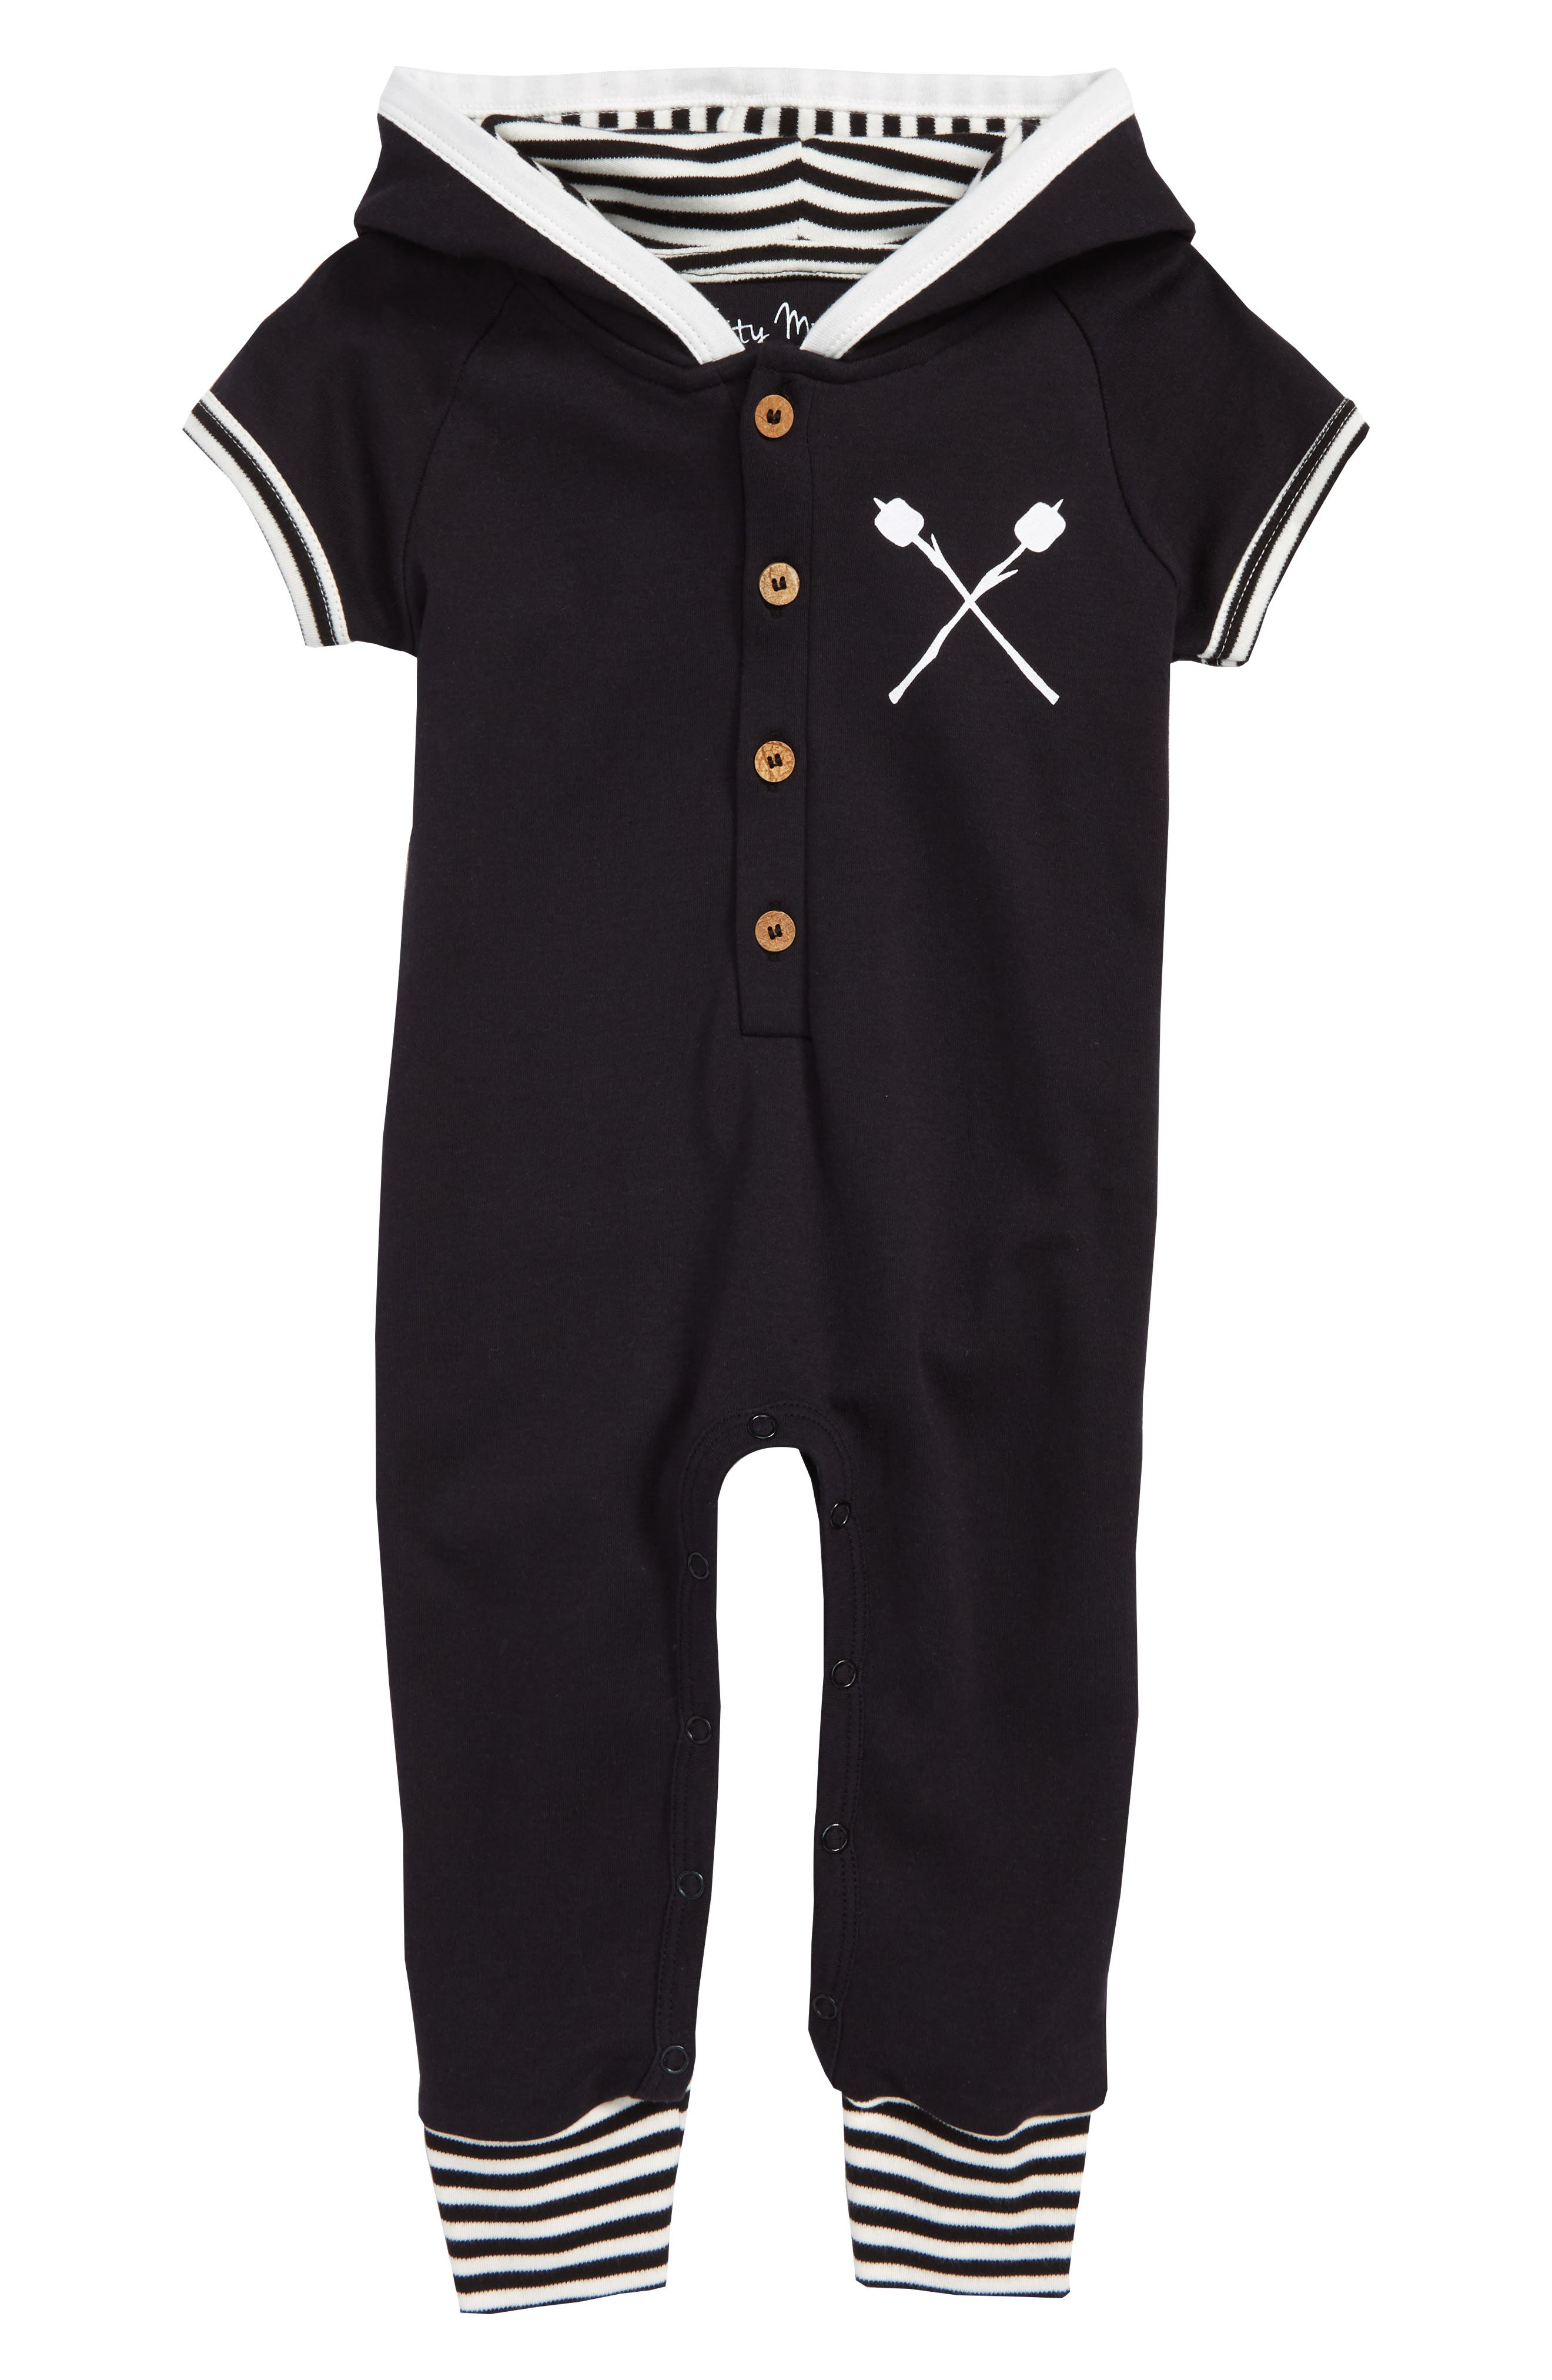 Camping Organic Cotton Hooded Romper,                         Main,                         color, Black